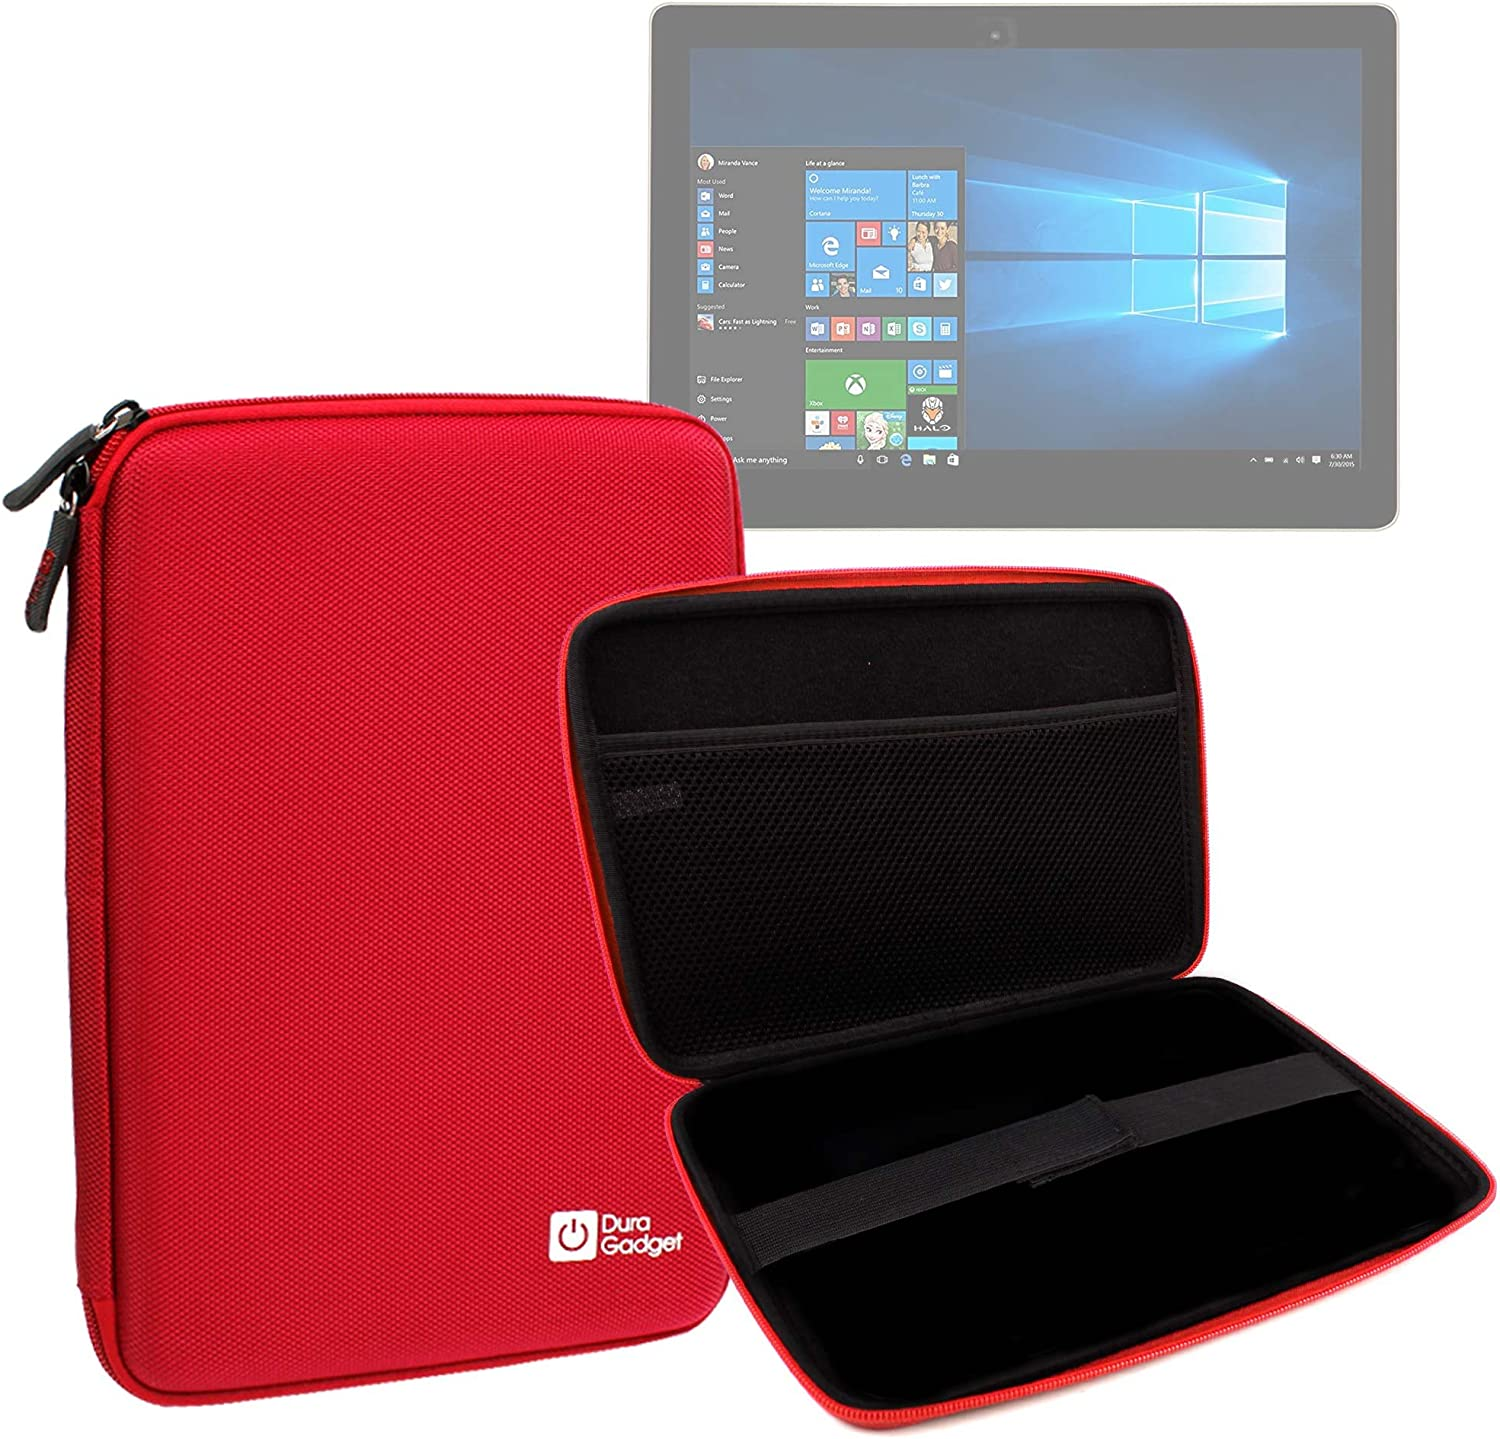 DURAGADGET Water-Resistant Red EVA Hard Armoured 'Shell' Case with Internal Netted Pouch Compatible with The iOTA One 10.1-Inch 2-in-1 Laptop